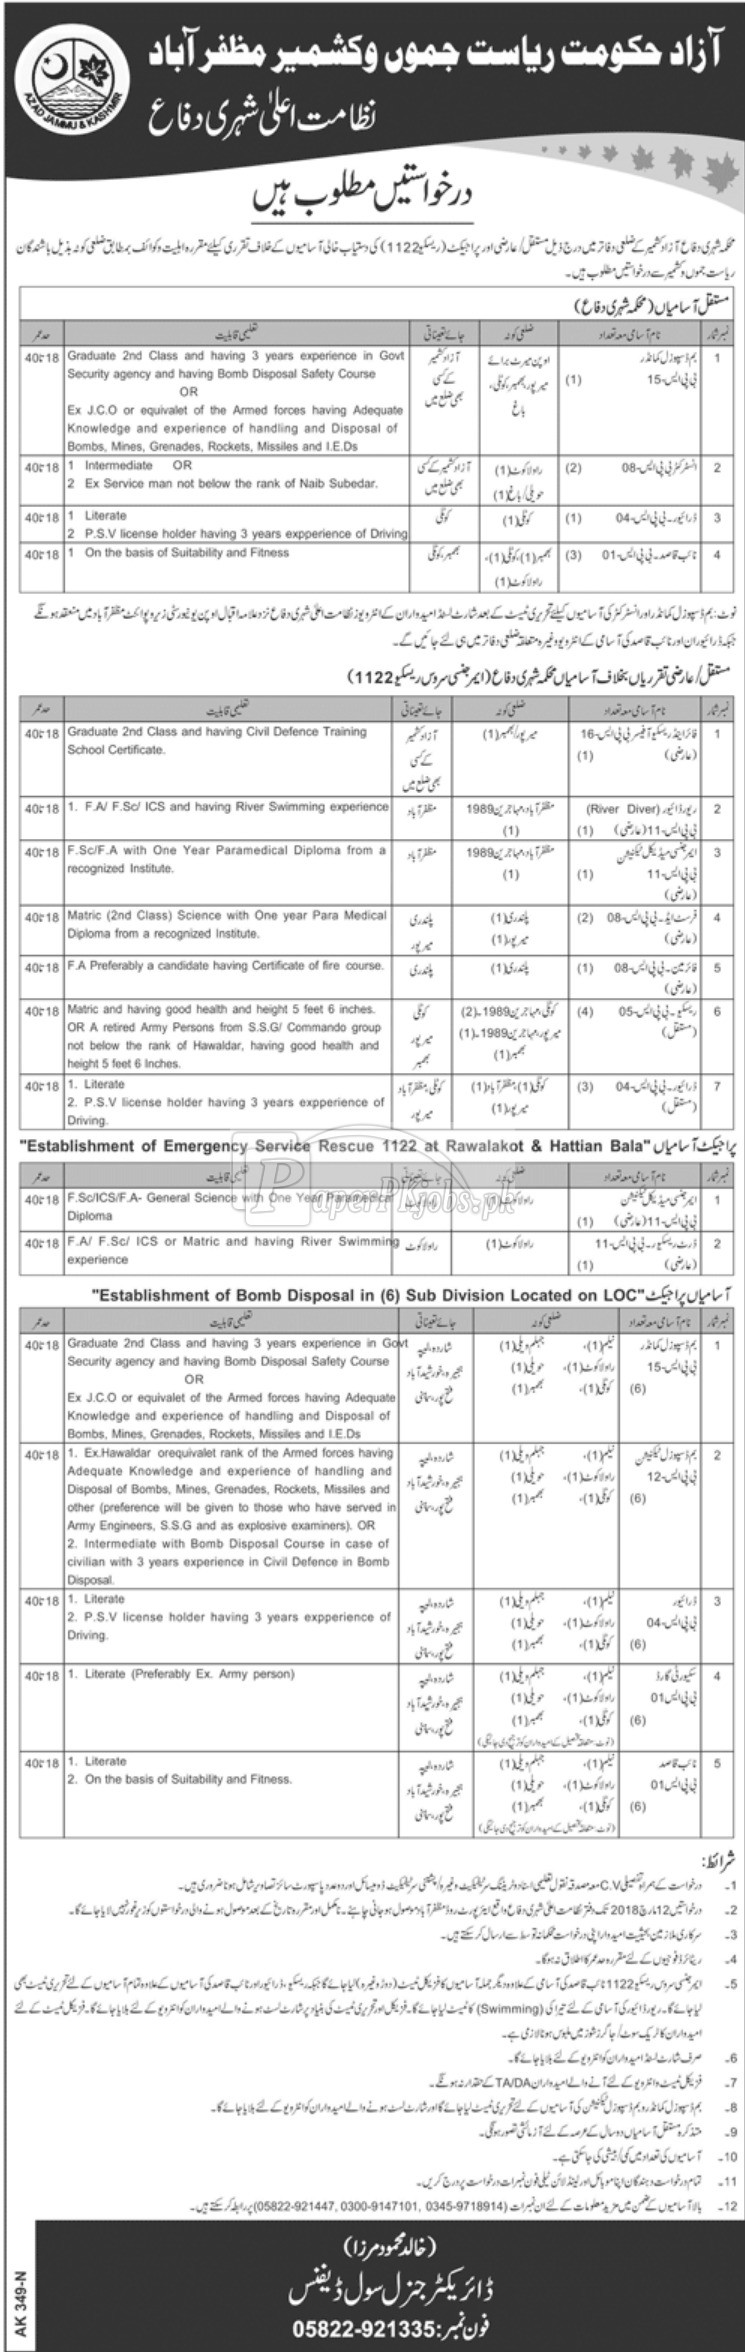 Civil Defence Department AJK Rescue 1122 Jobs 2018